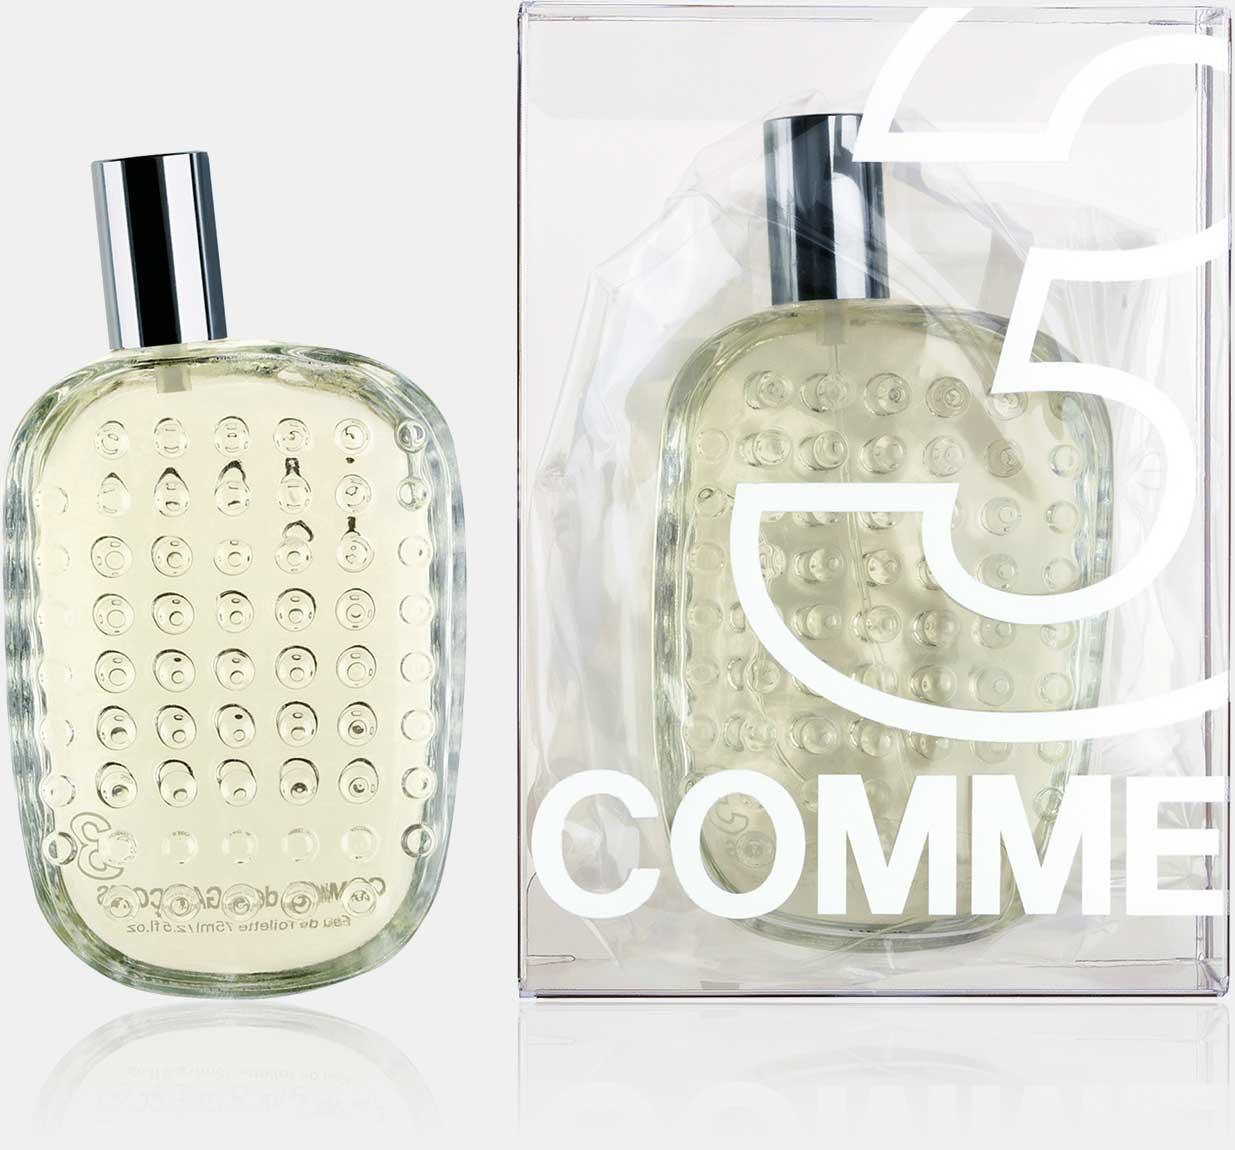 Comme 3 - Eau de Toilette (75 ml natural spray)